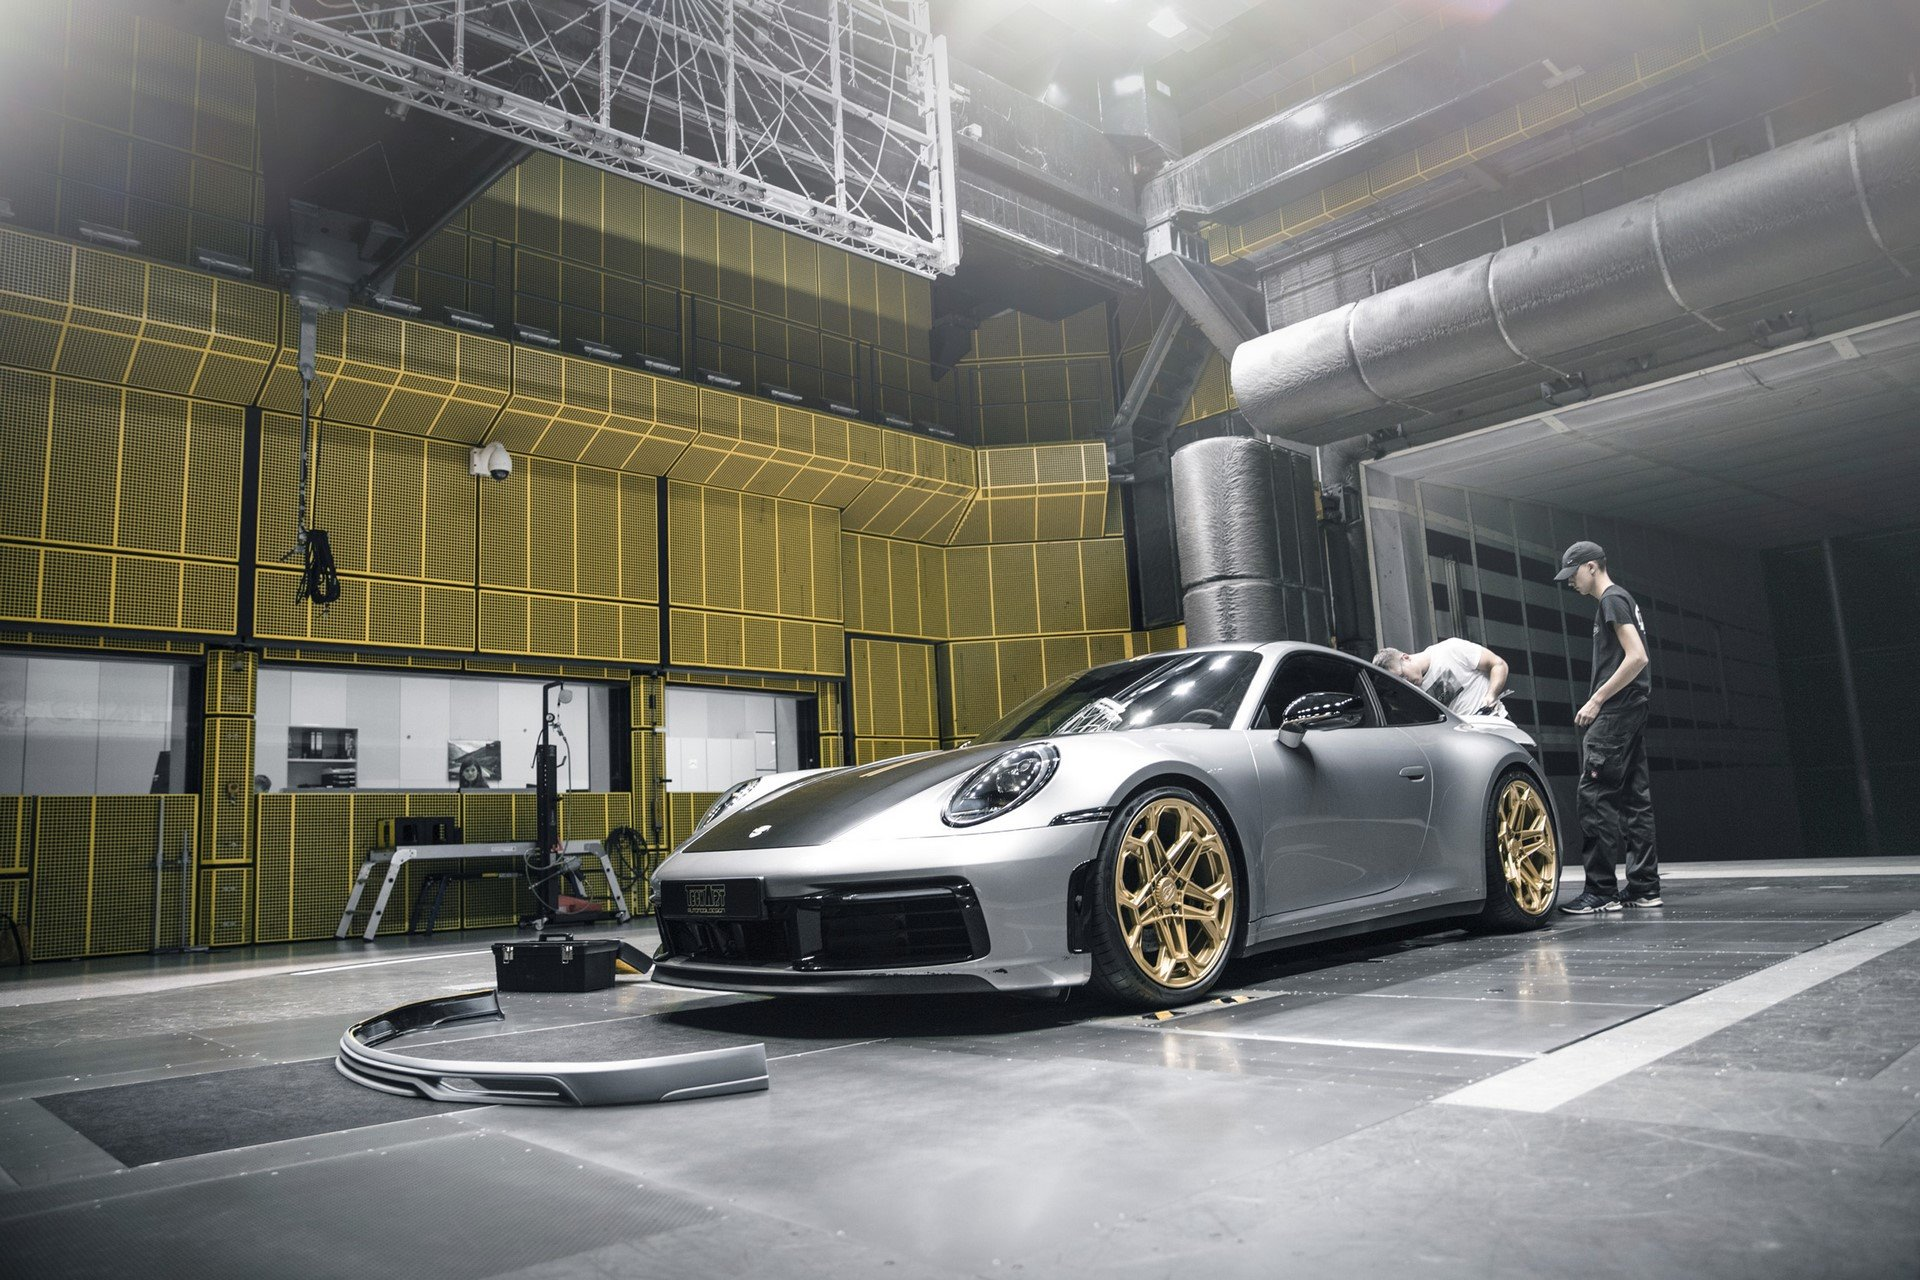 Porsche-911-Carrera-4S-by-TechArt-56